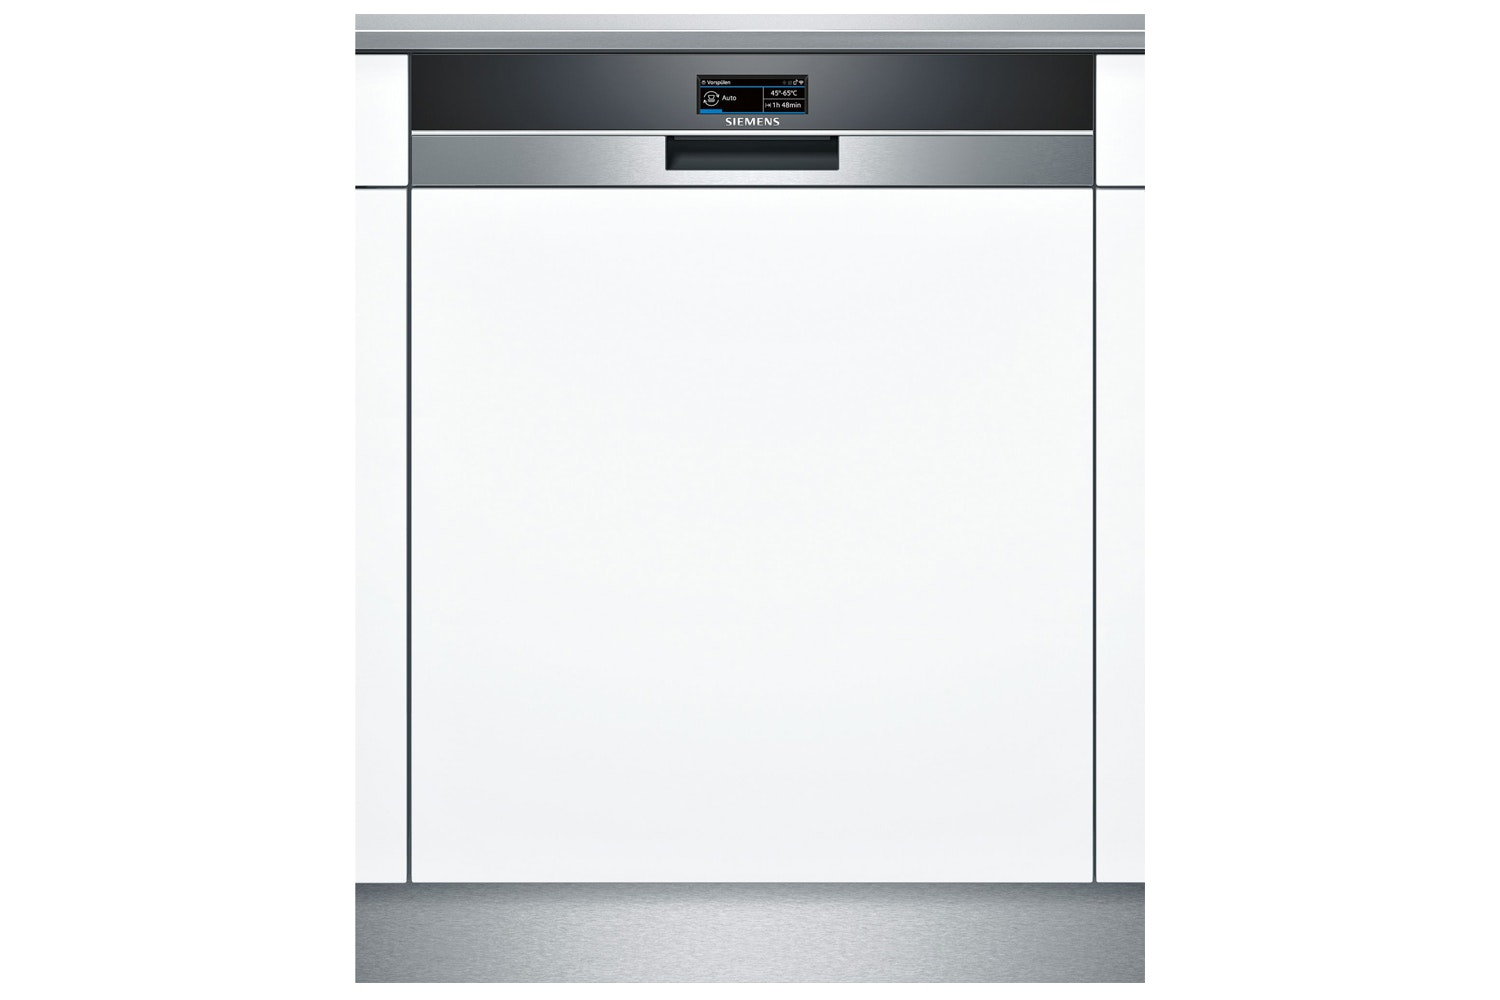 Siemens iQ700 Semi-Integrated Dishwasher | 13 Place | SN578S36TE